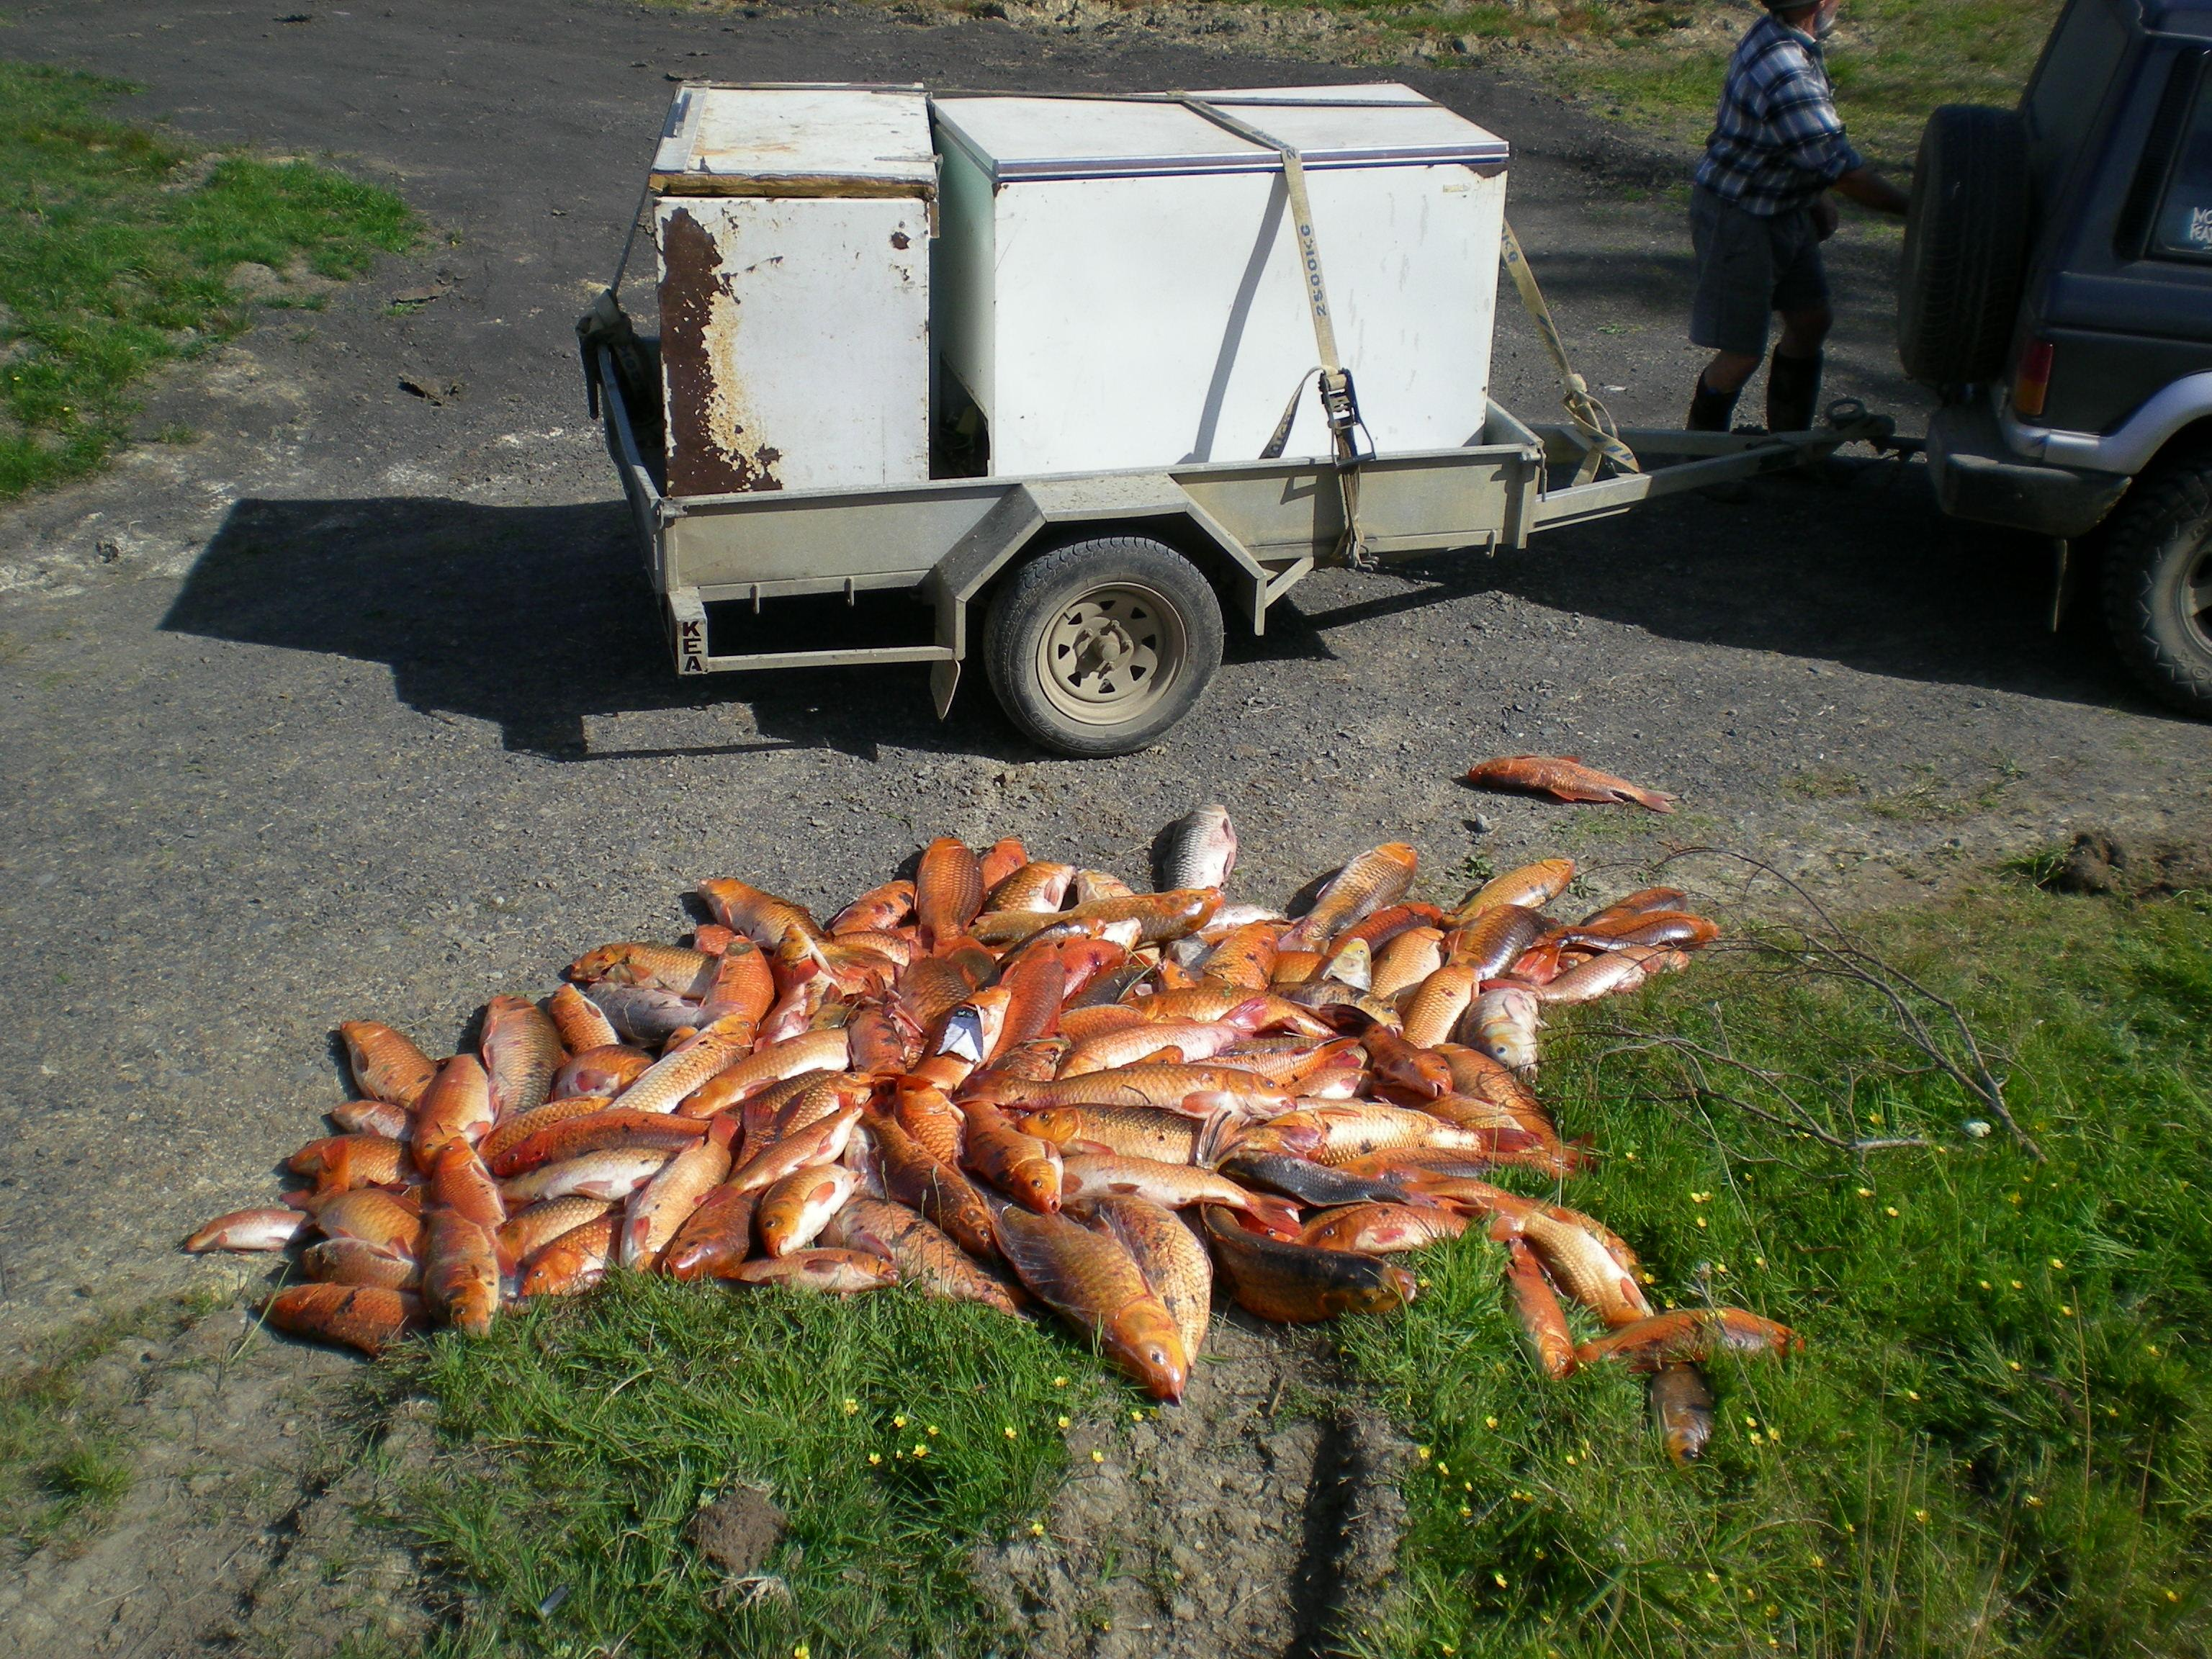 Koi carp trap trial successful at lake waikare scoop news - Kooi trap ...